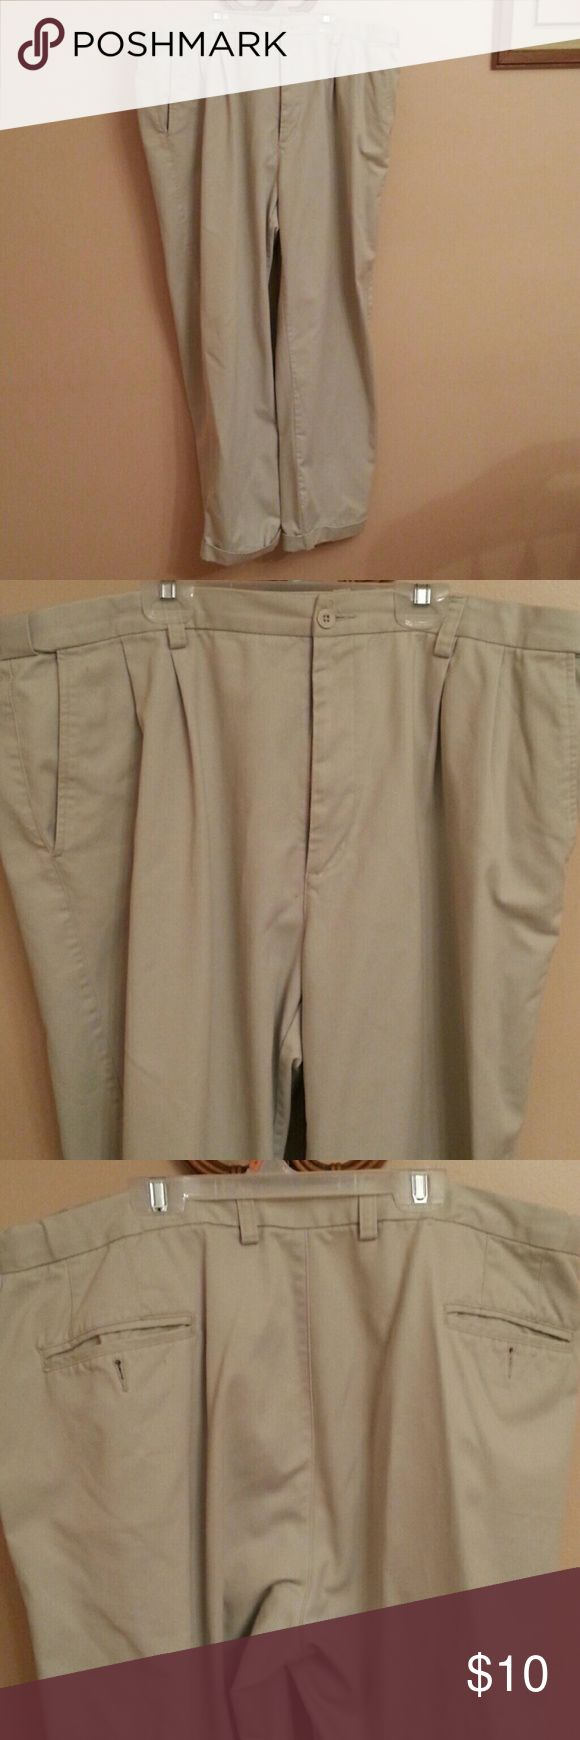 Men's Dress slacks Cream/tan men's dress slacks.  Pleats in the front pockets in front and back.  Cuffs at the bottom of pants.  A couple of small spots but still in good condition. Areas are on back of legs. puritan Pants Dress